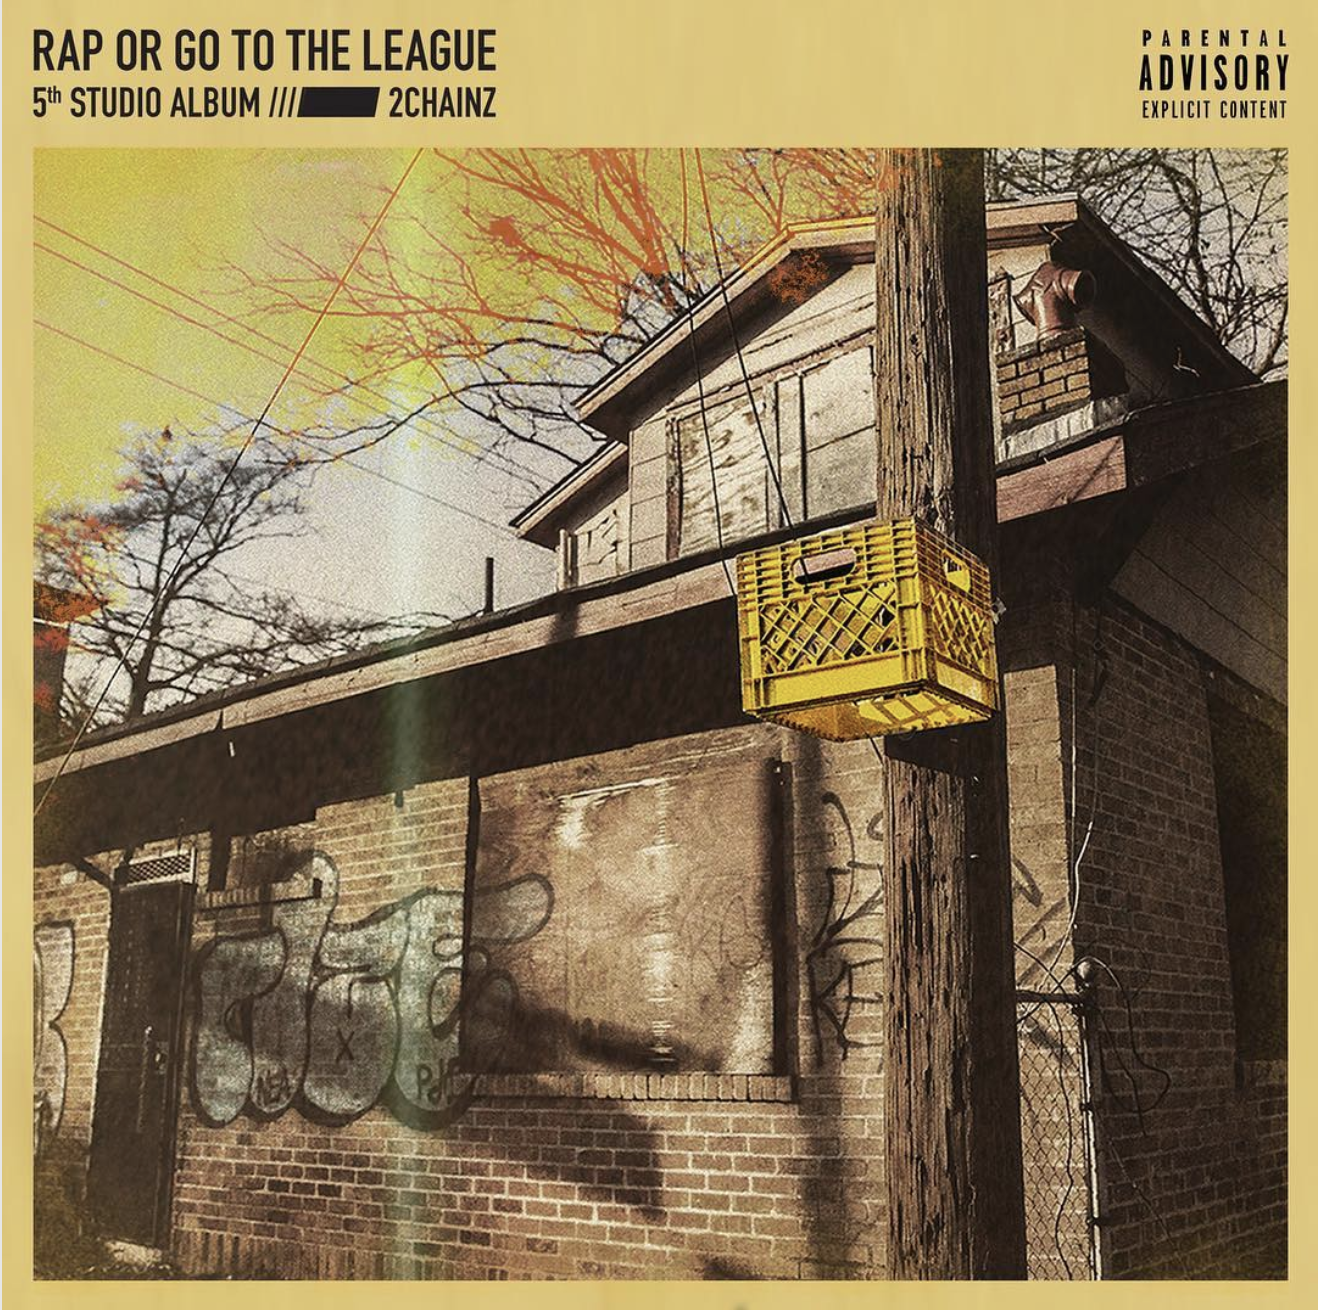 2 Chainz - Rap Or Go To The League